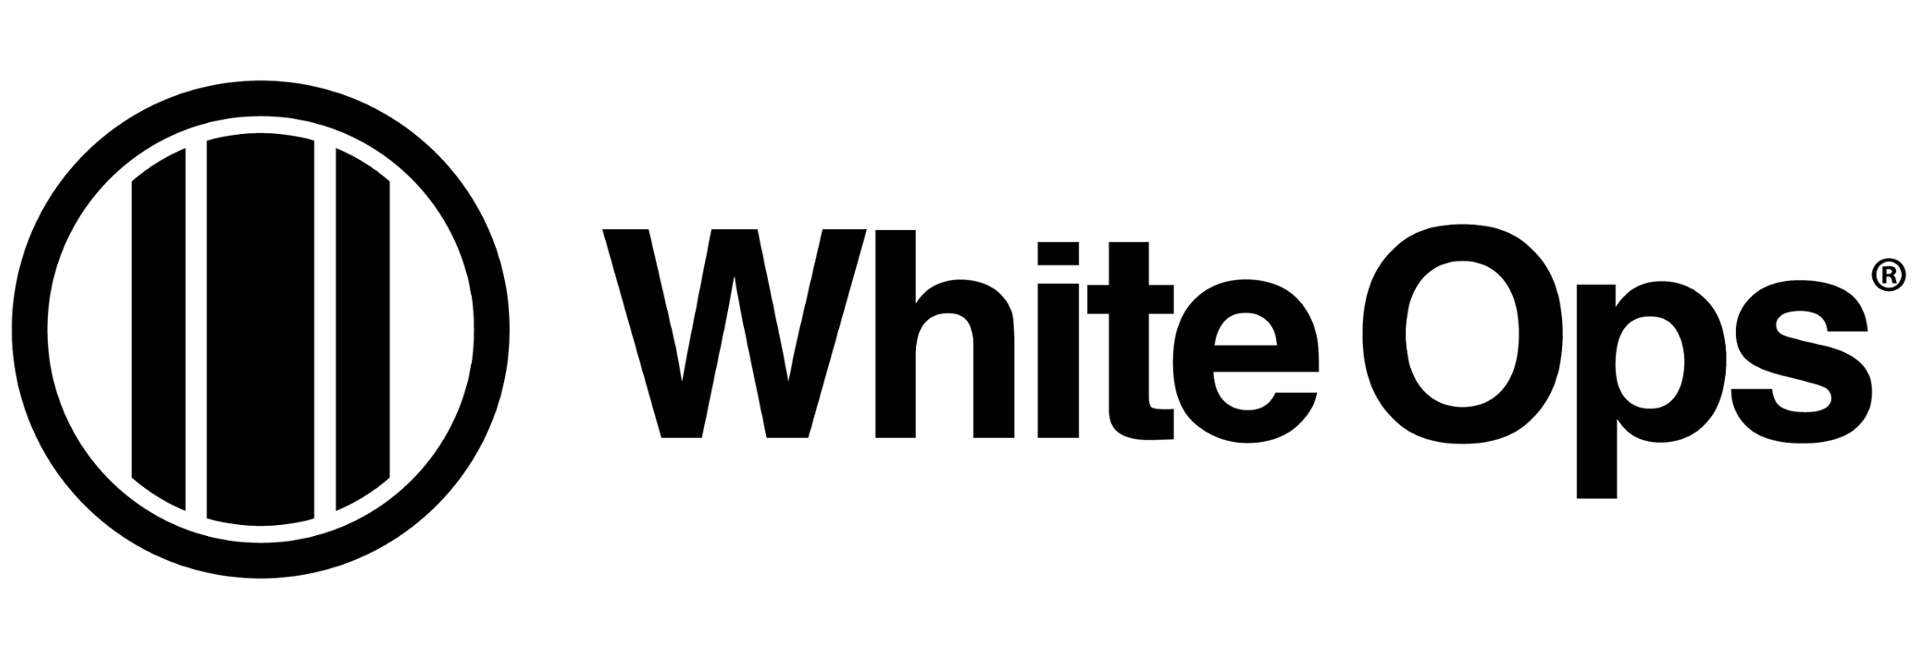 white ops logo.png